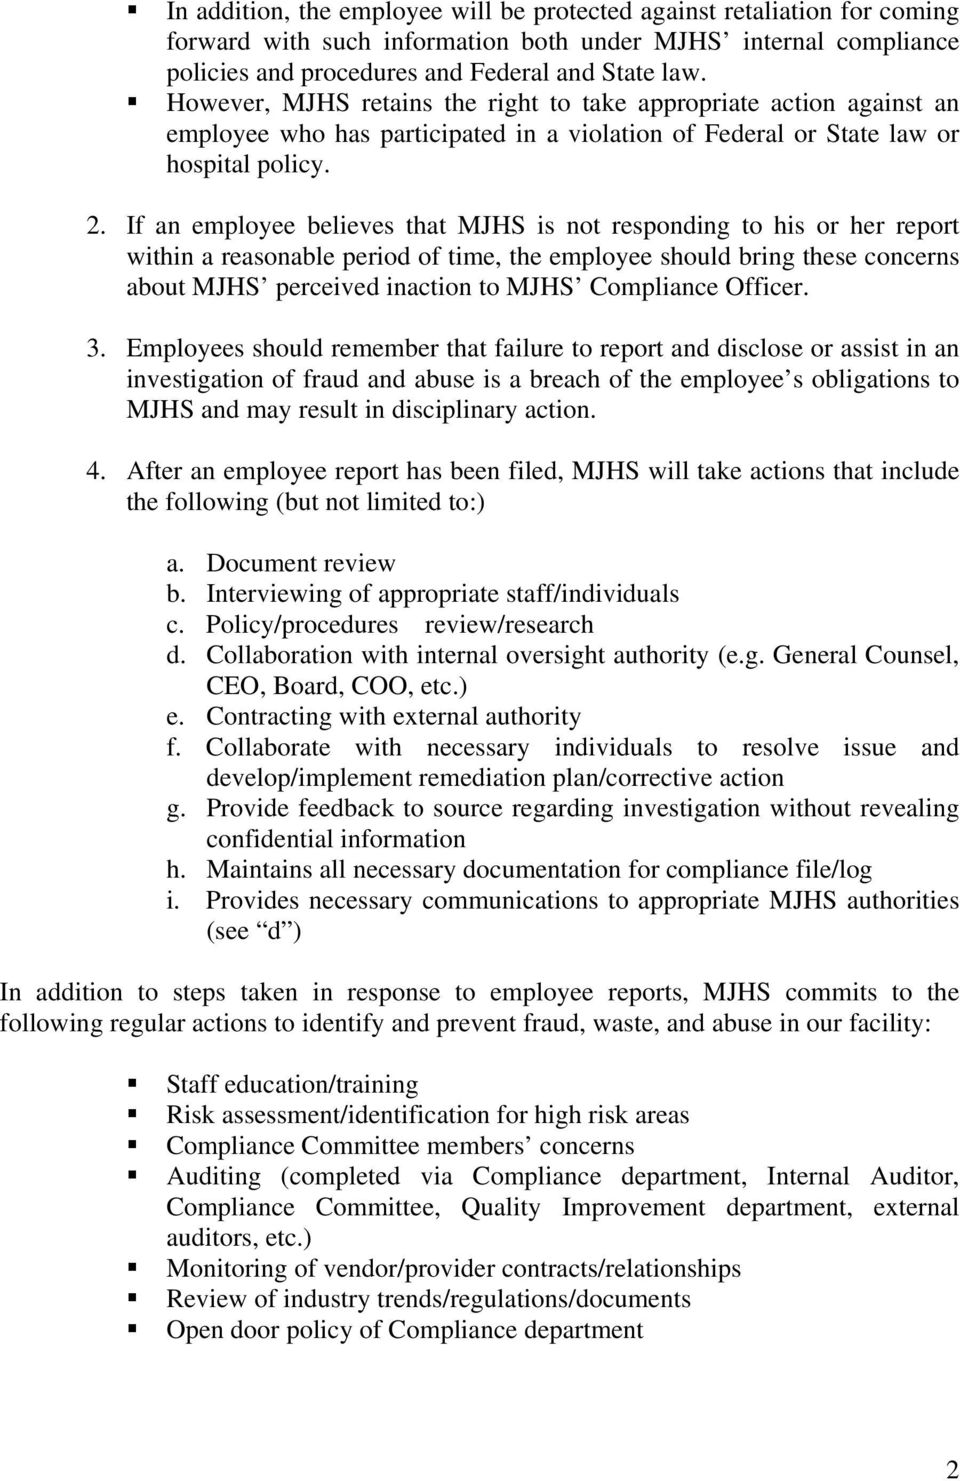 If an employee believes that MJHS is not responding to his or her report within a reasonable period of time, the employee should bring these concerns about MJHS perceived inaction to MJHS Compliance